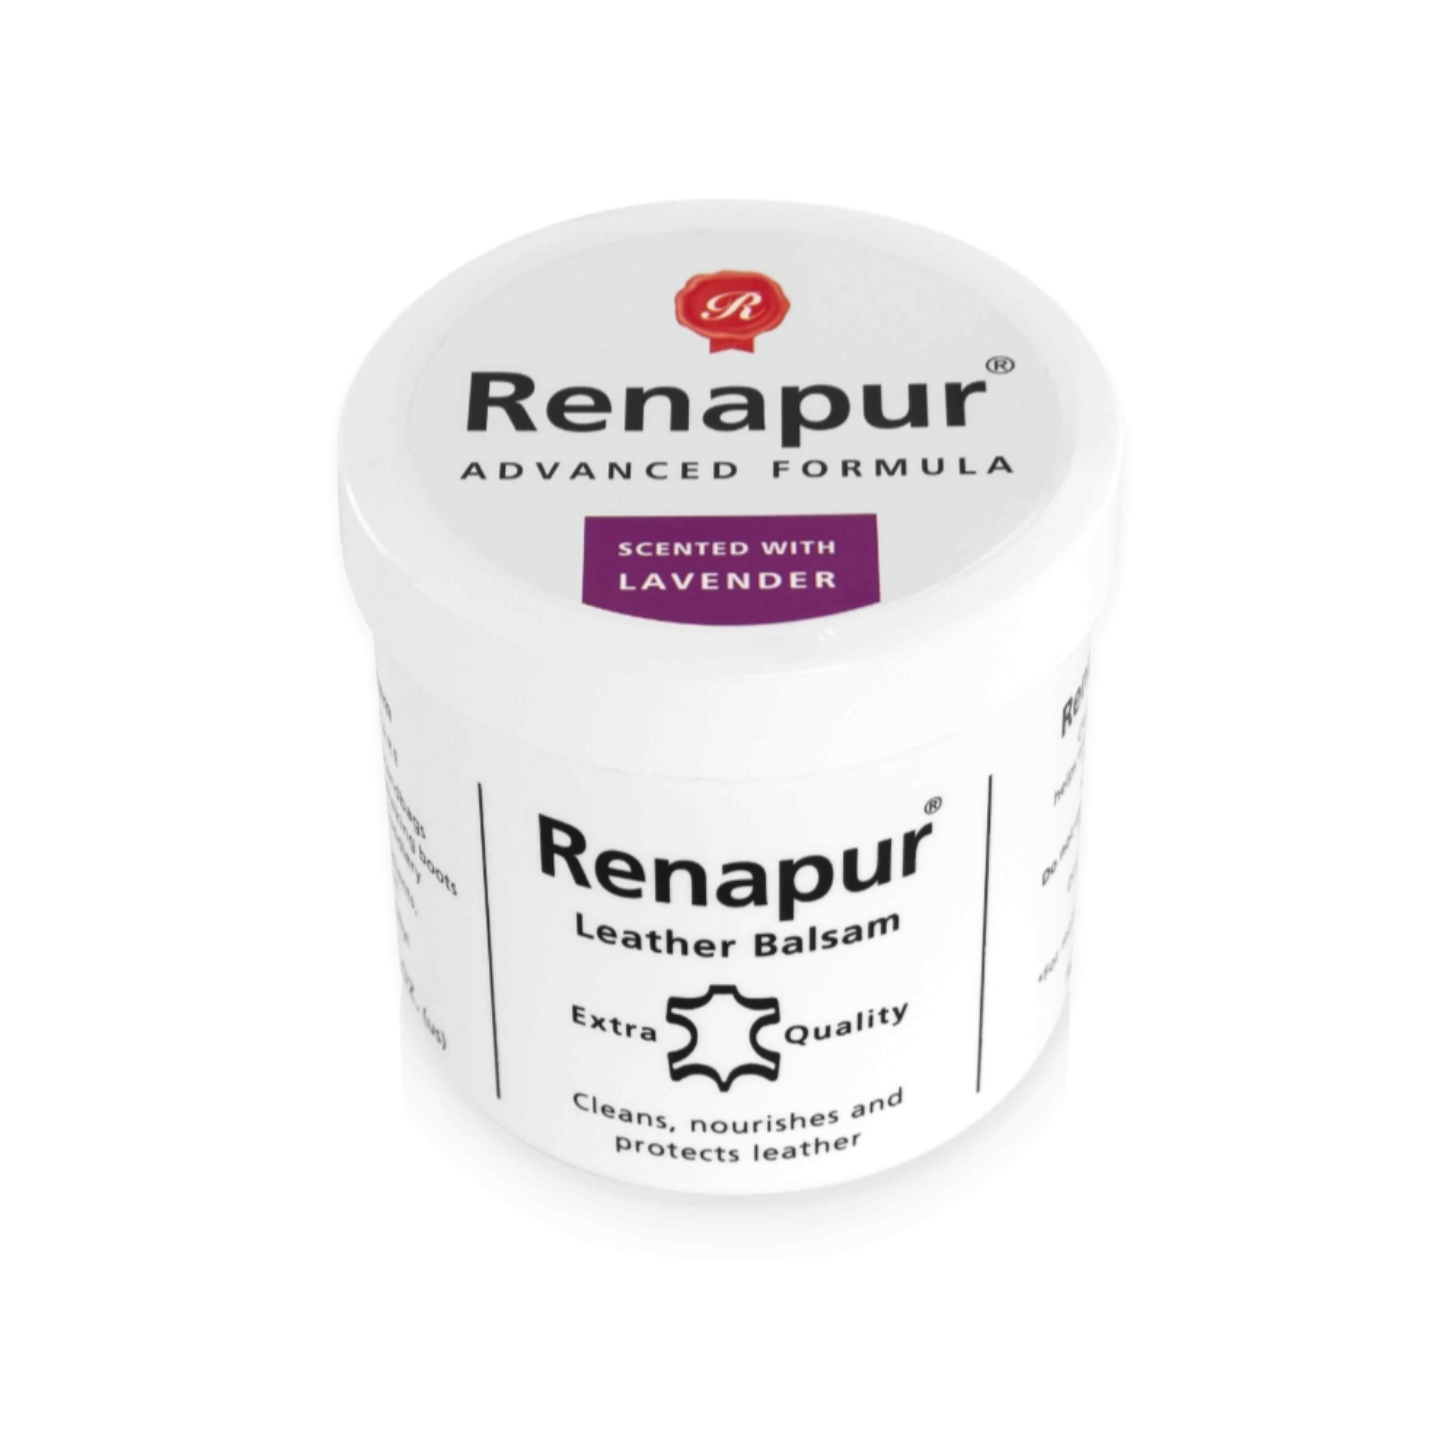 Renapur Leather Balsam 200ml - Scented with LAVENDER